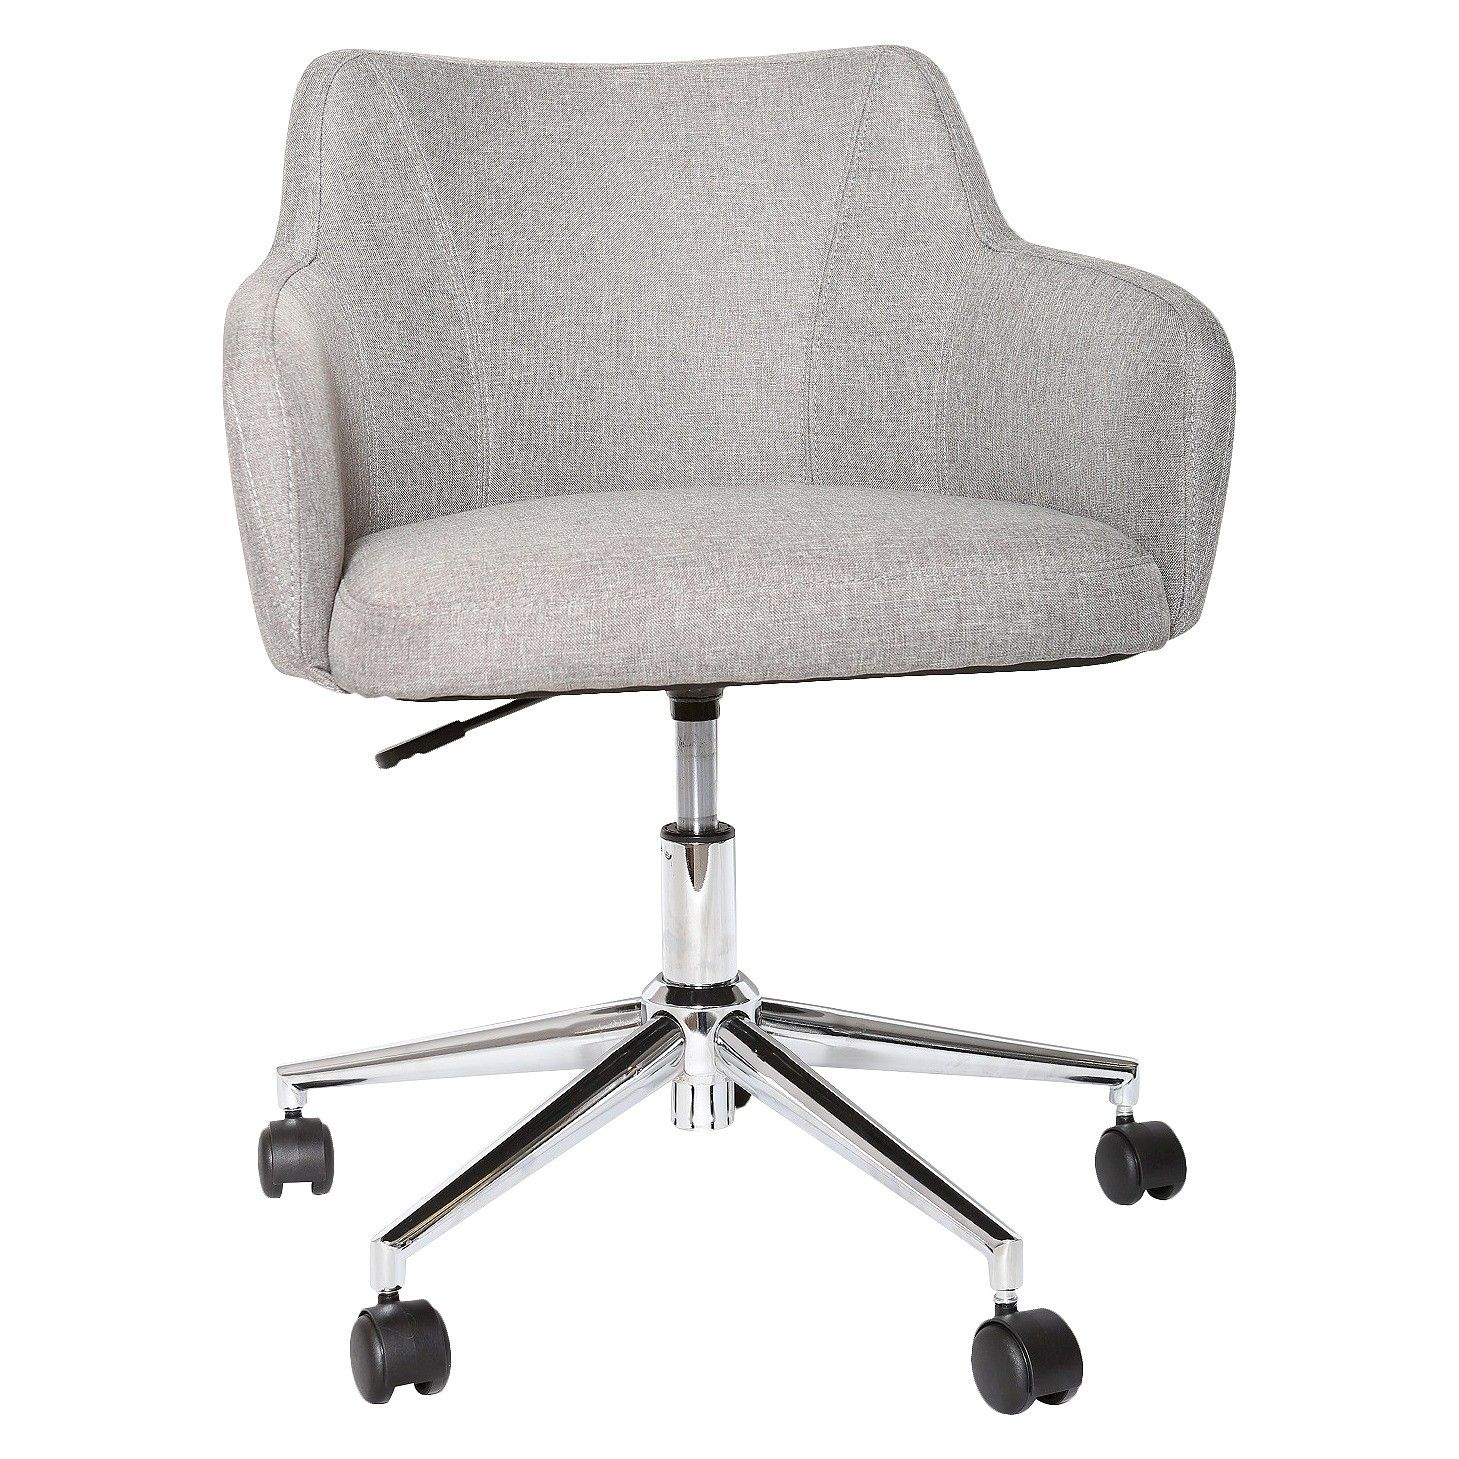 Room Essentials Office Chair Upholstered Grey Linen : Target